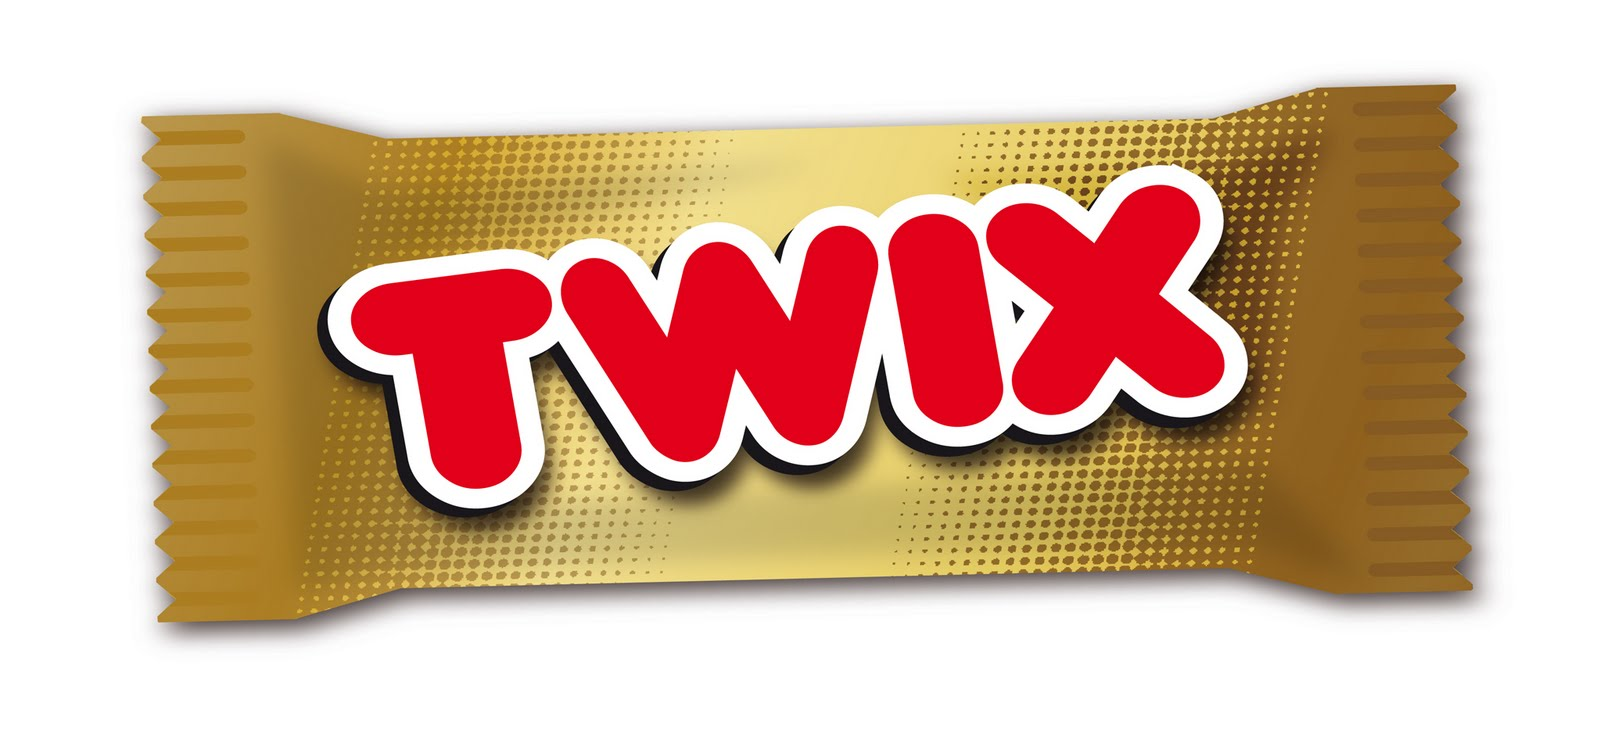 MISS C STILES: CS - 1 day project to re-create the Twix bar...